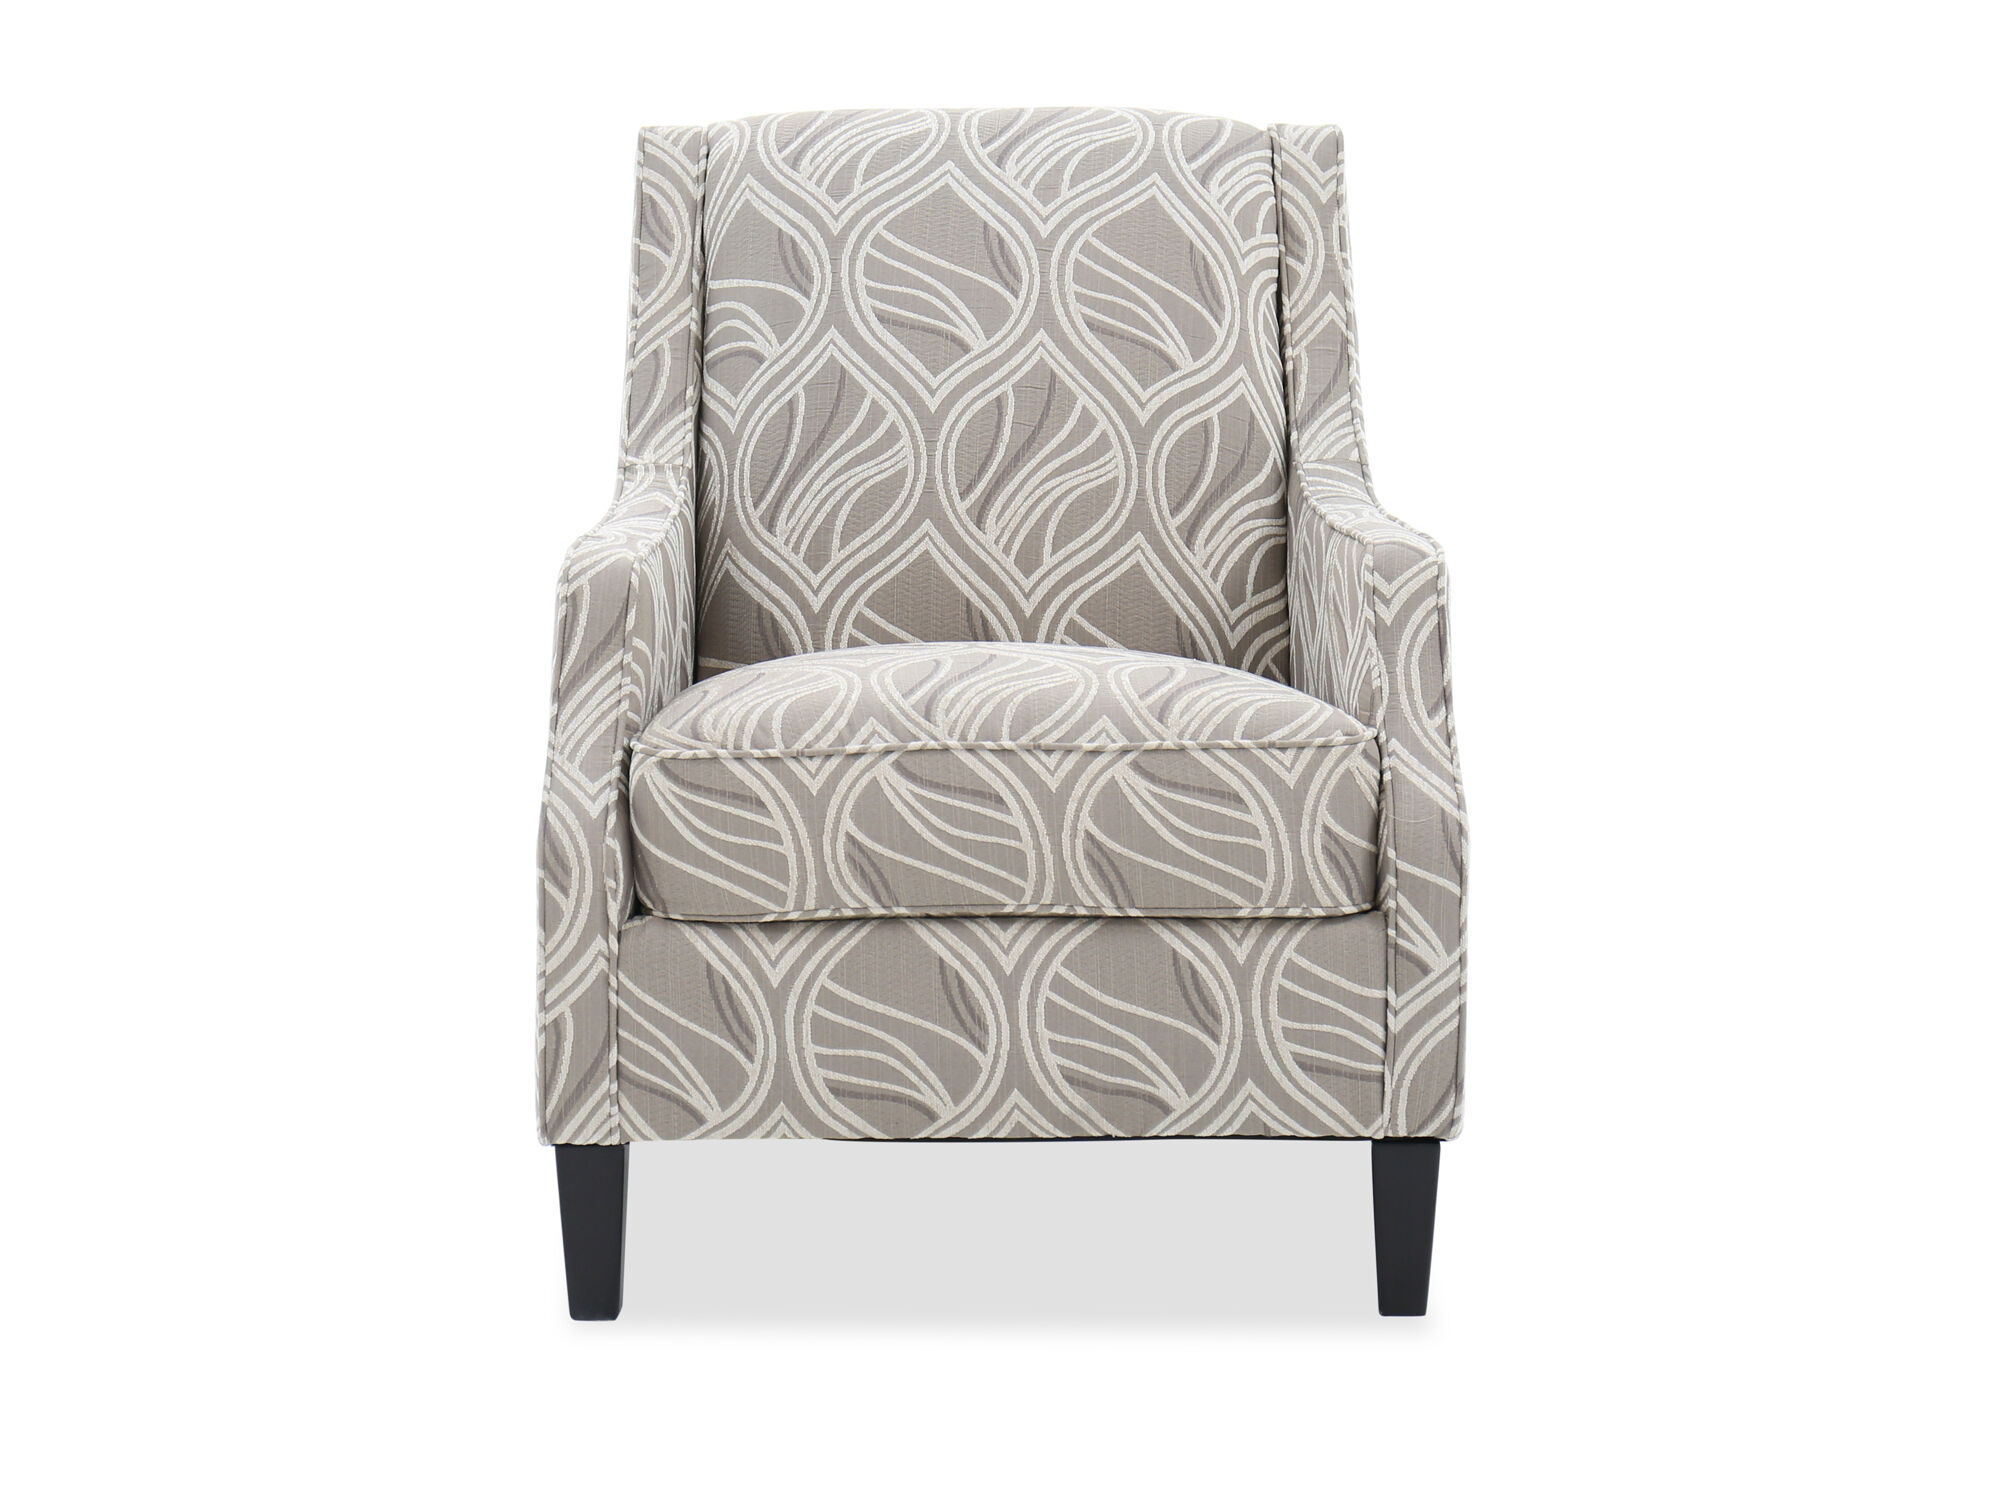 home decor accent chairs portable chair umbrella set leaf patterned contemporary 30 quot in beige